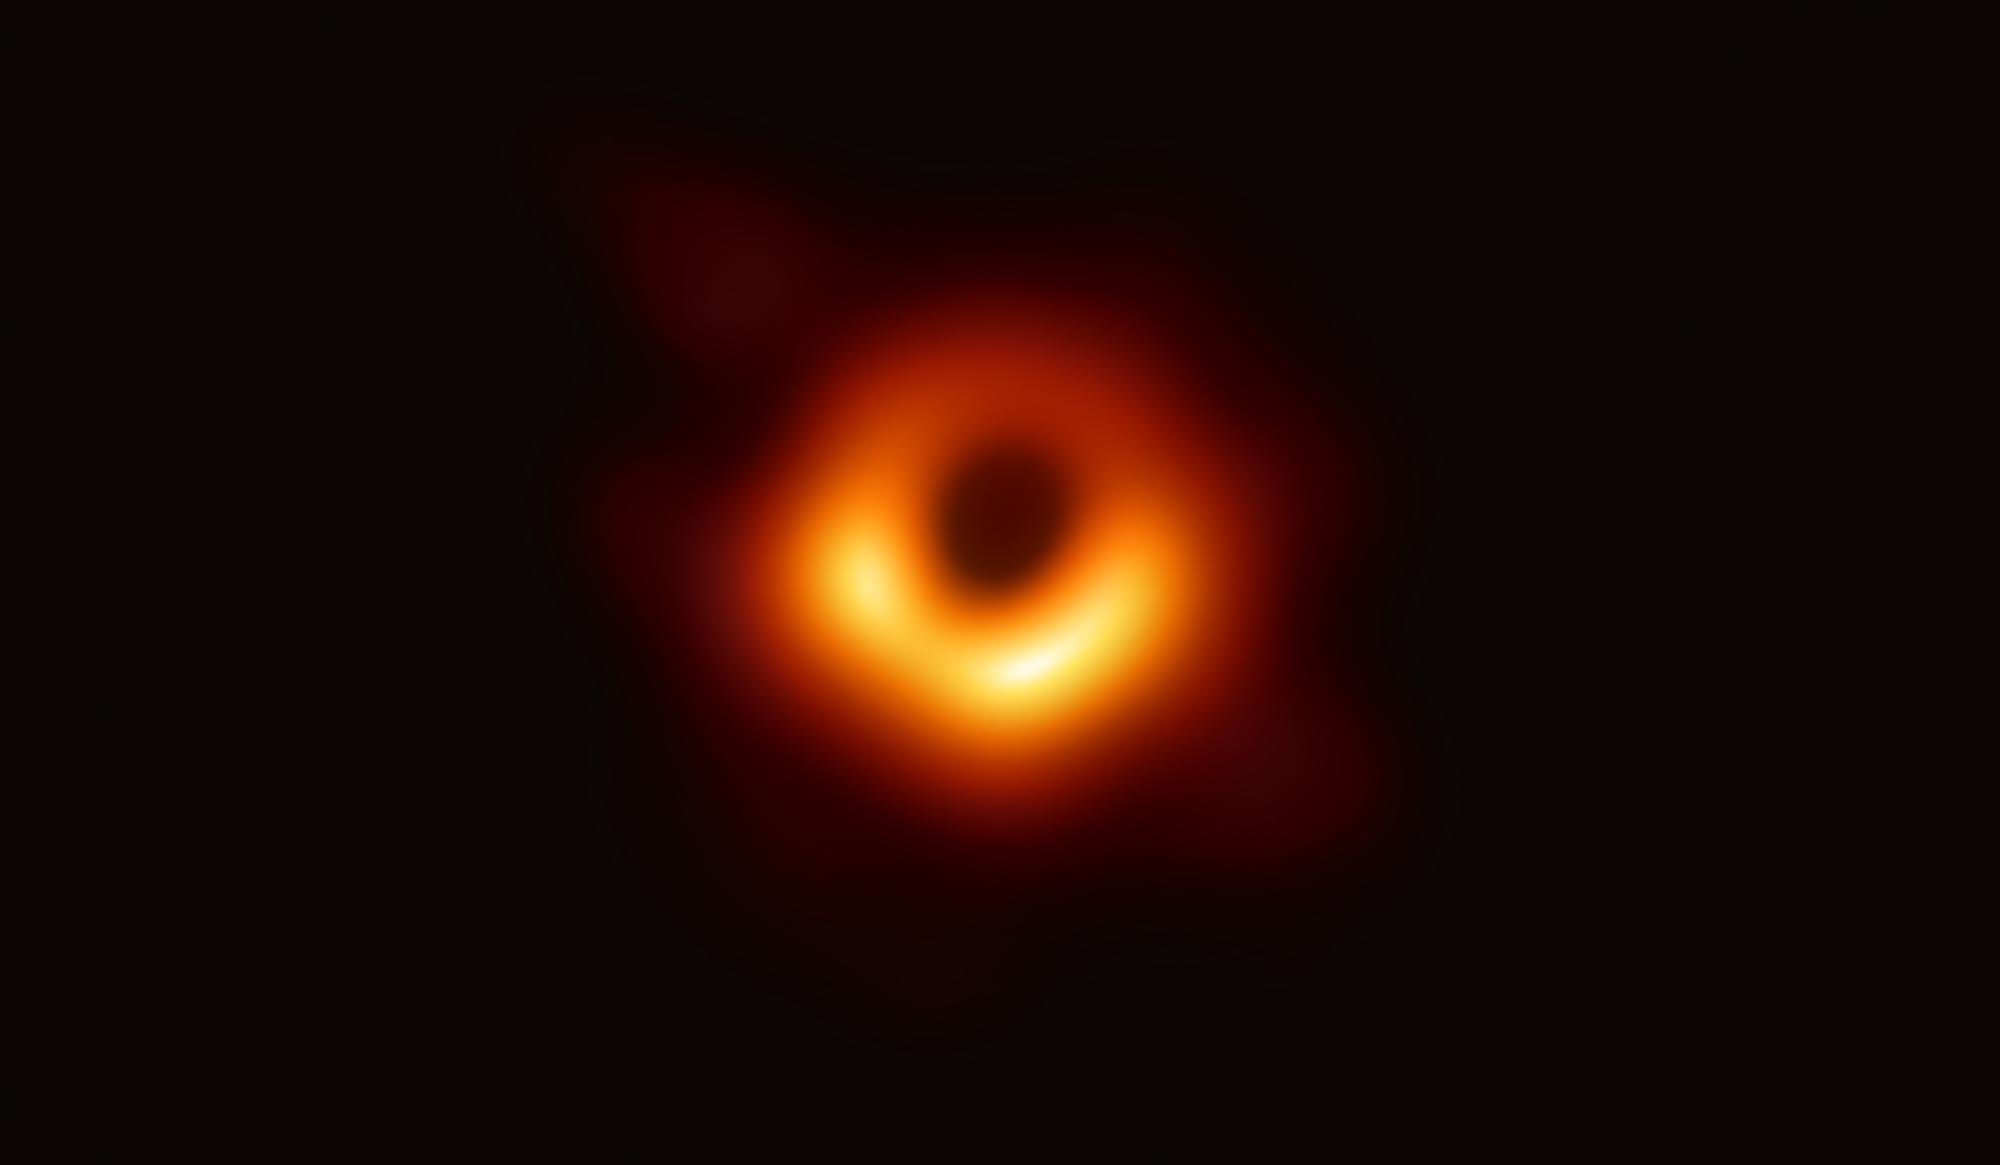 M87's supermassive black hole, imaged for the first time, is six billion times as massive as our sun. Image credit - EHT Collaboration